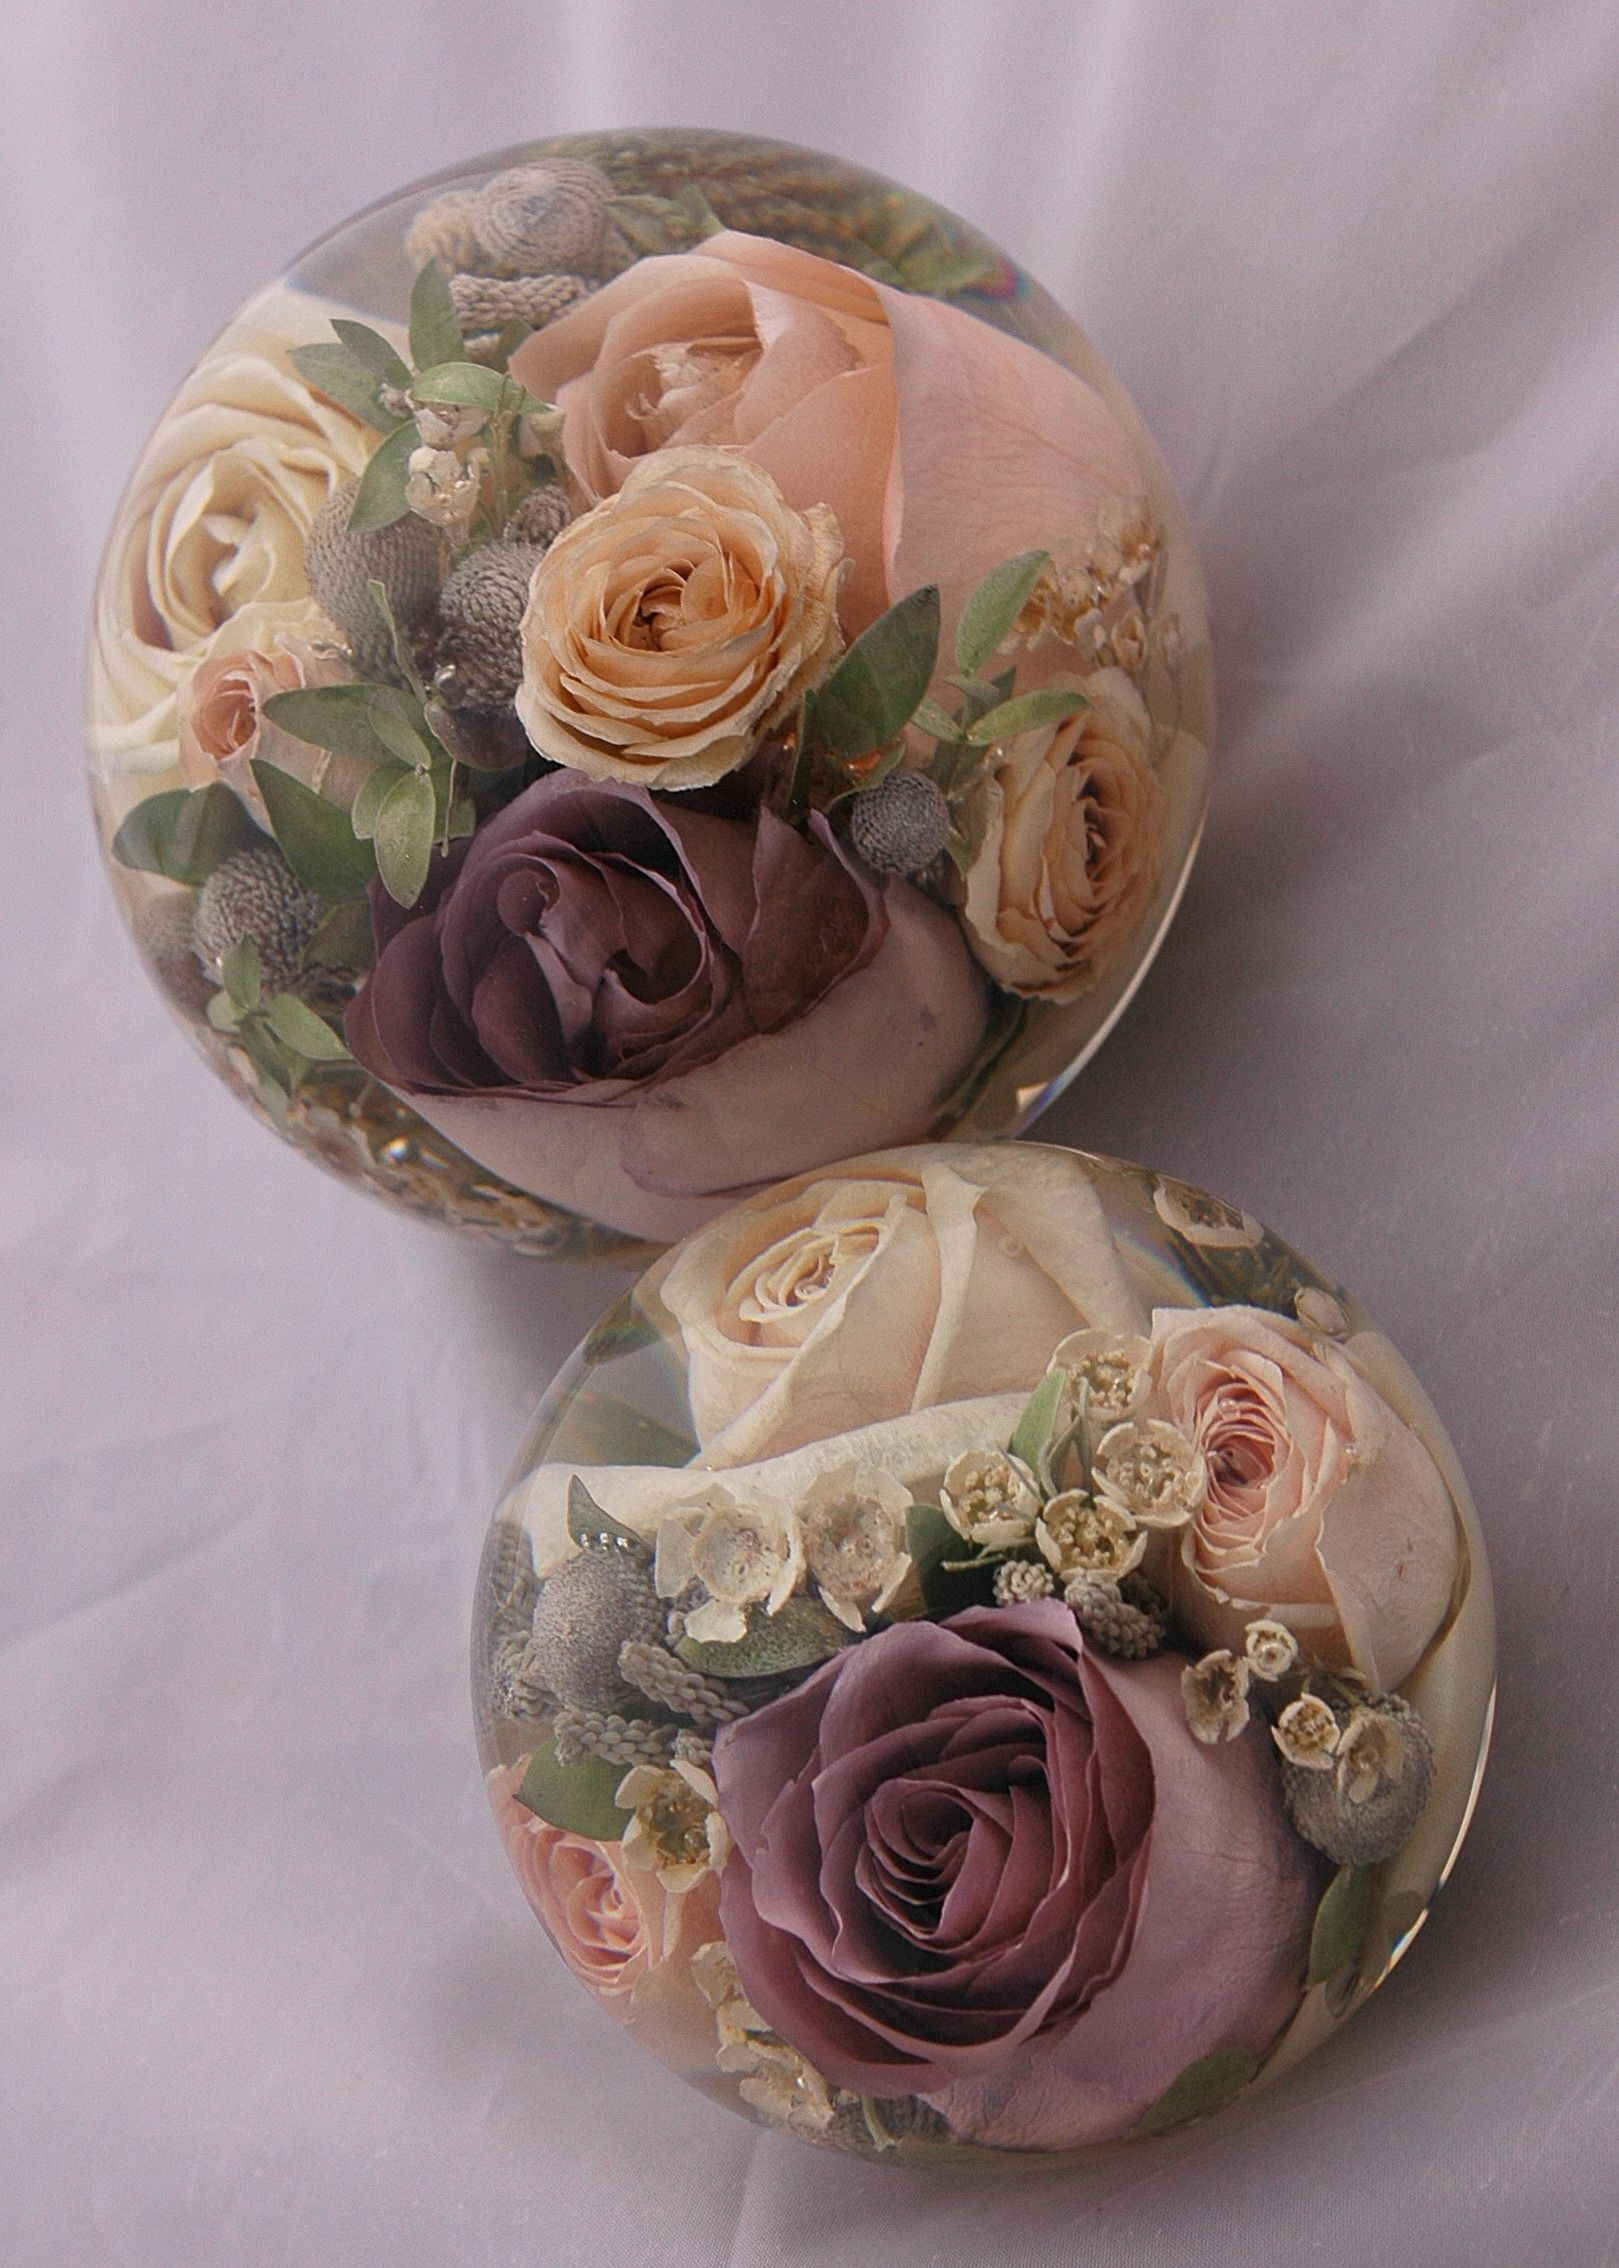 Two of the images of our 2 designs of wedding flower